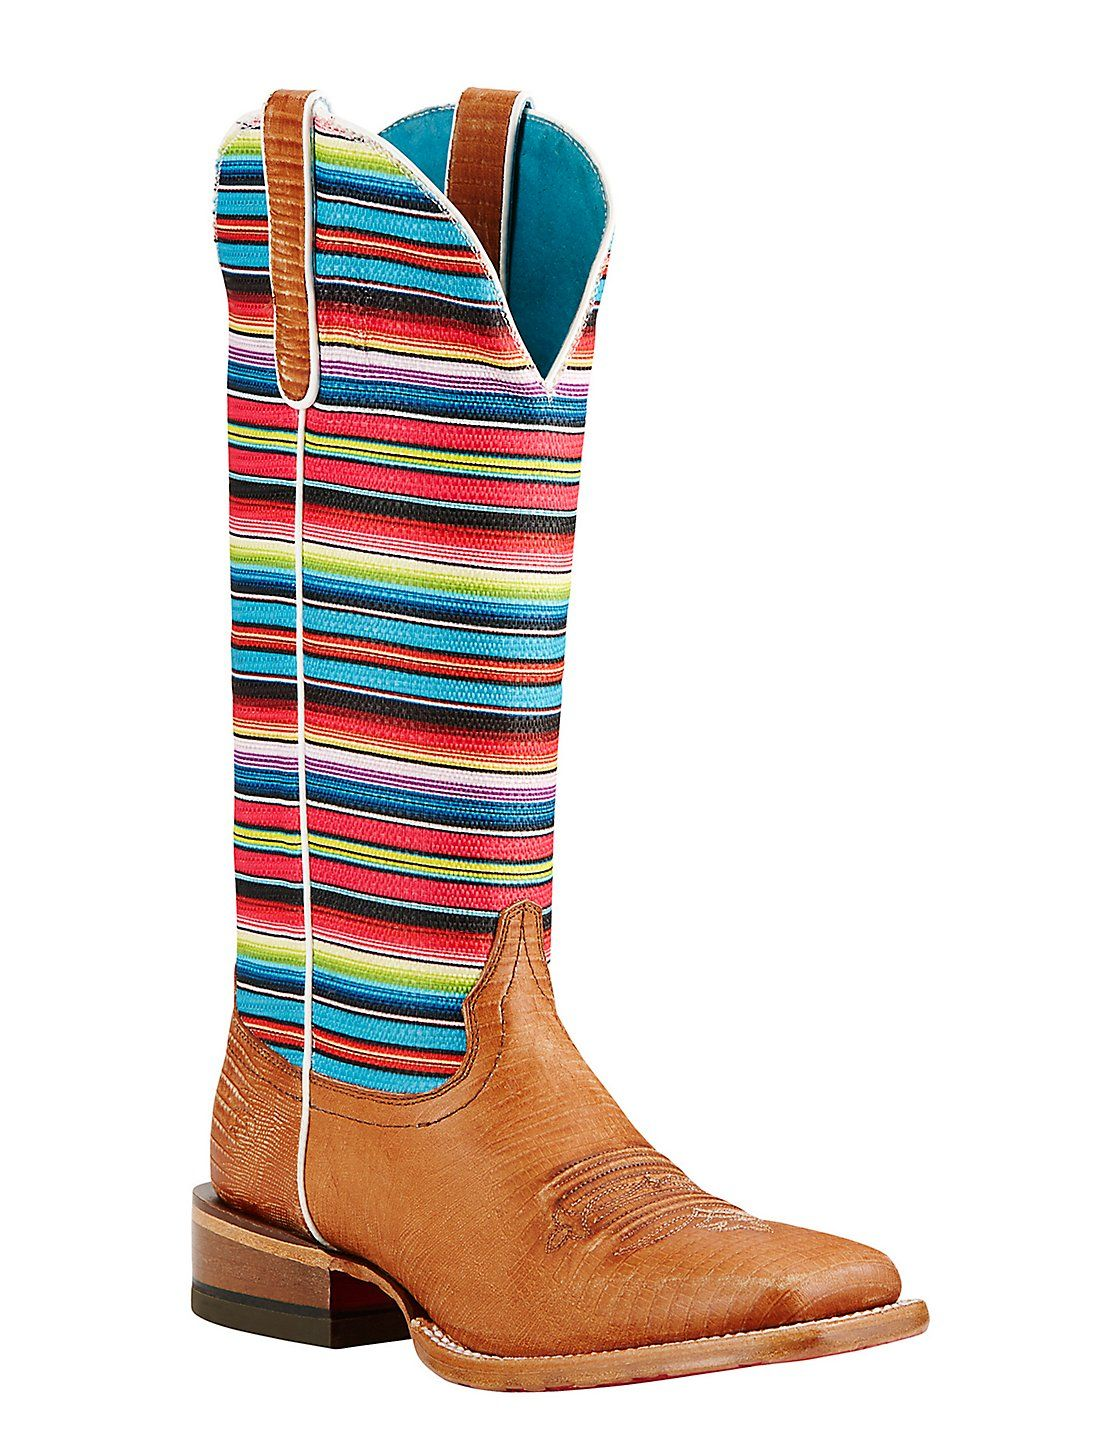 Women's Square Toe Boots | Western Square Toe Boots